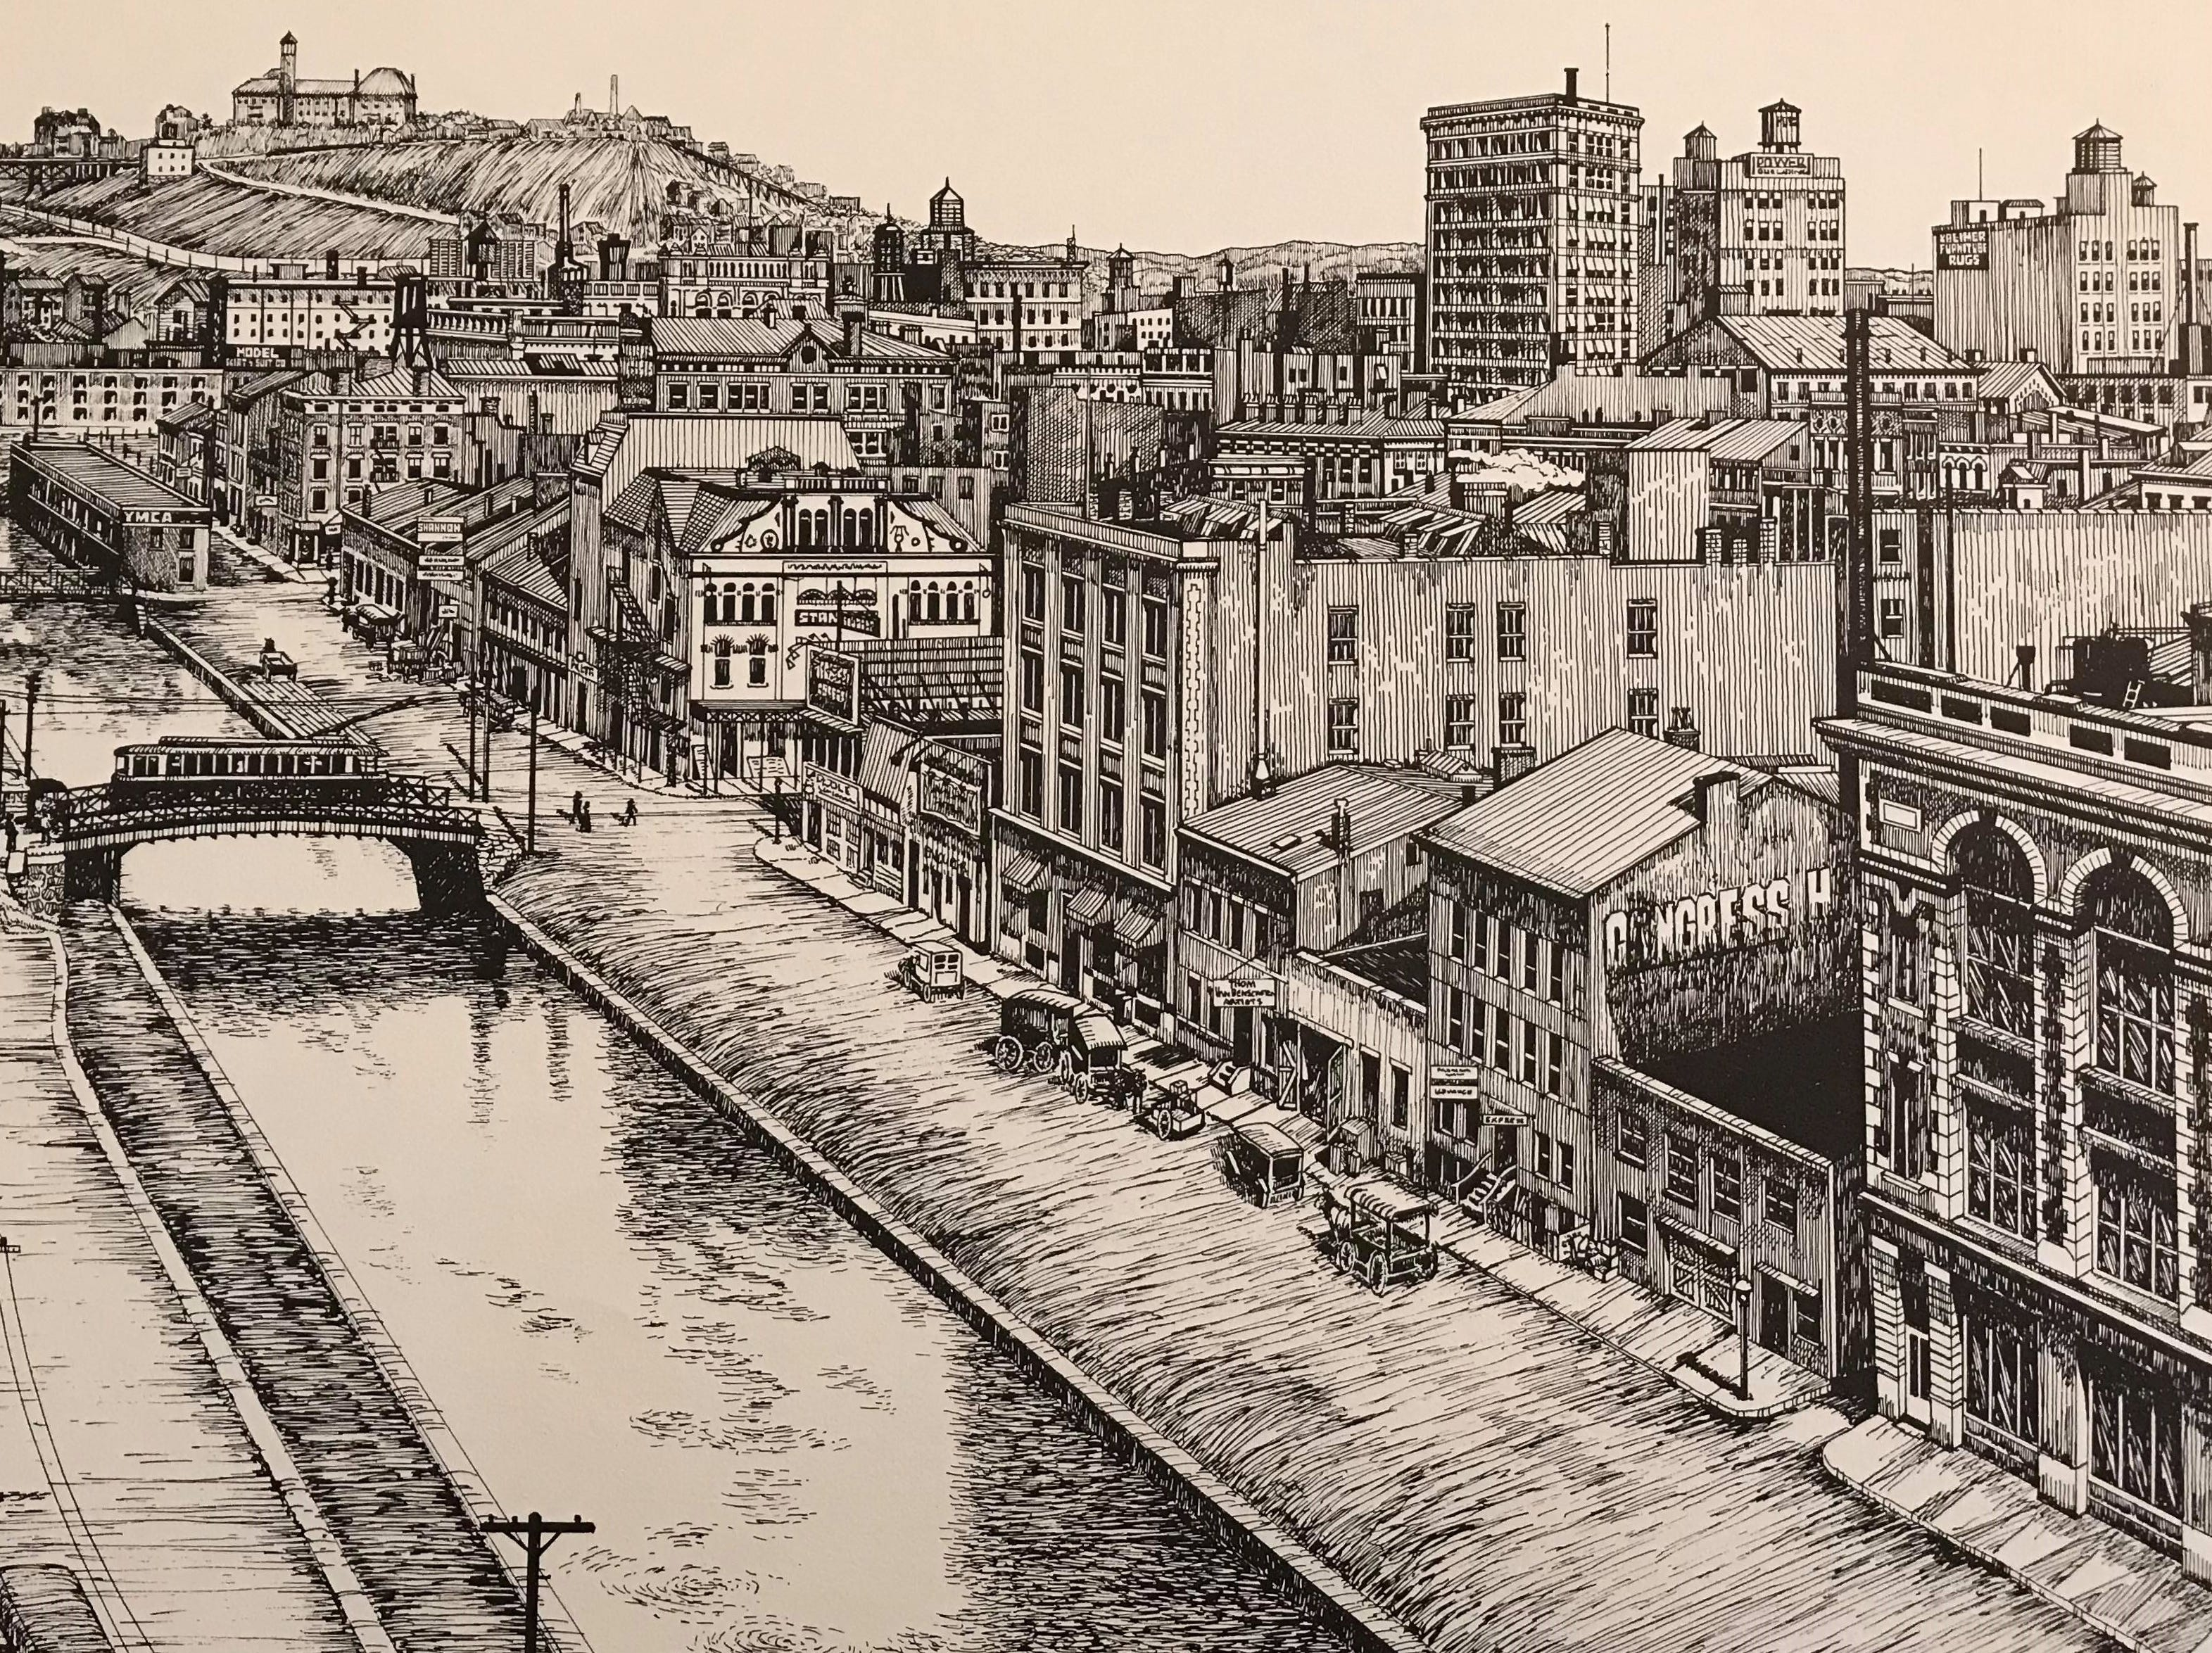 This is Thom Van Benschoten's print of the Miami and Erie canals.